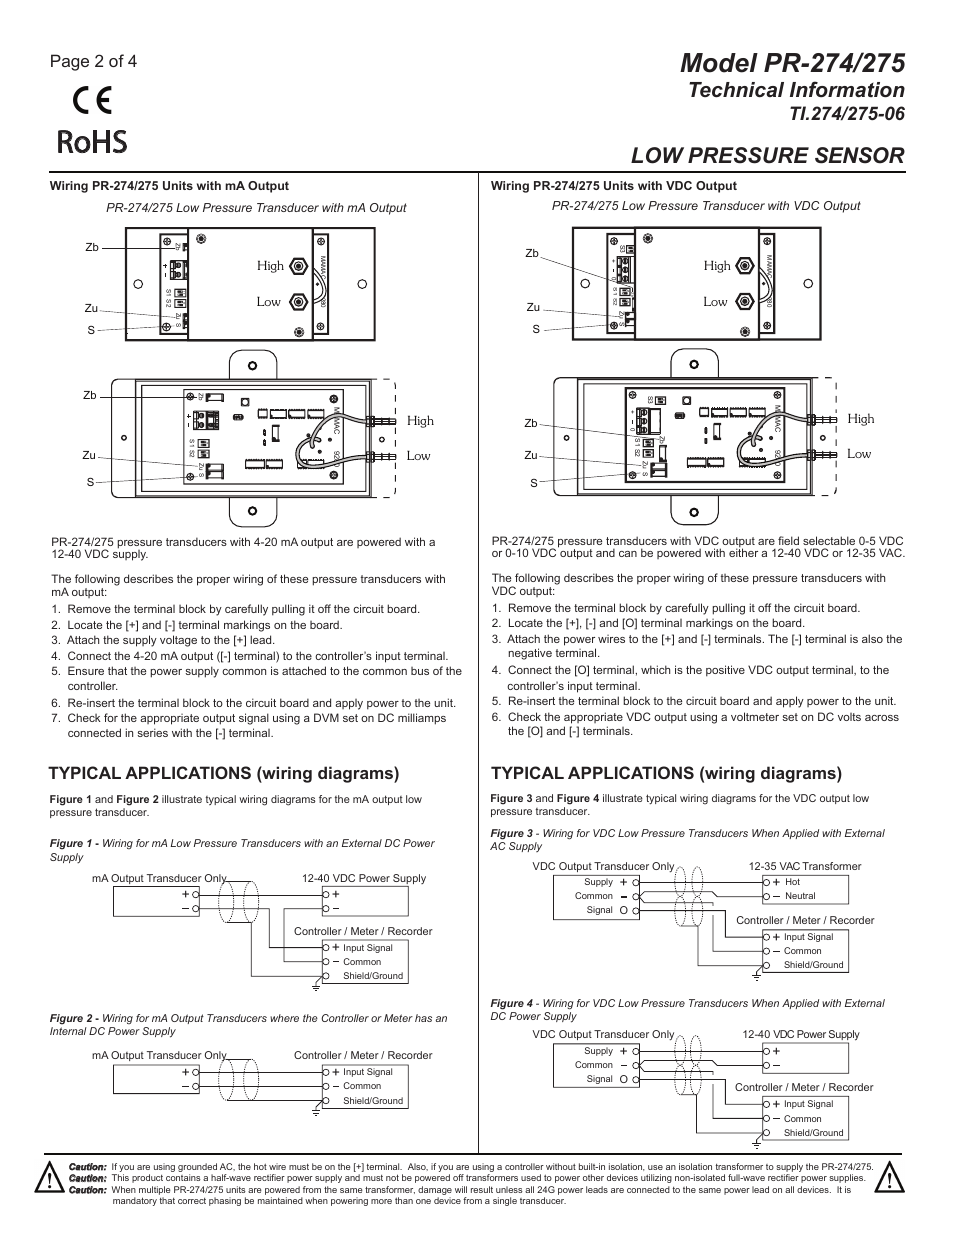 medium resolution of ti 274 275 06 pg2 rohs technical information mamac systems pr 275 user manual page 2 4